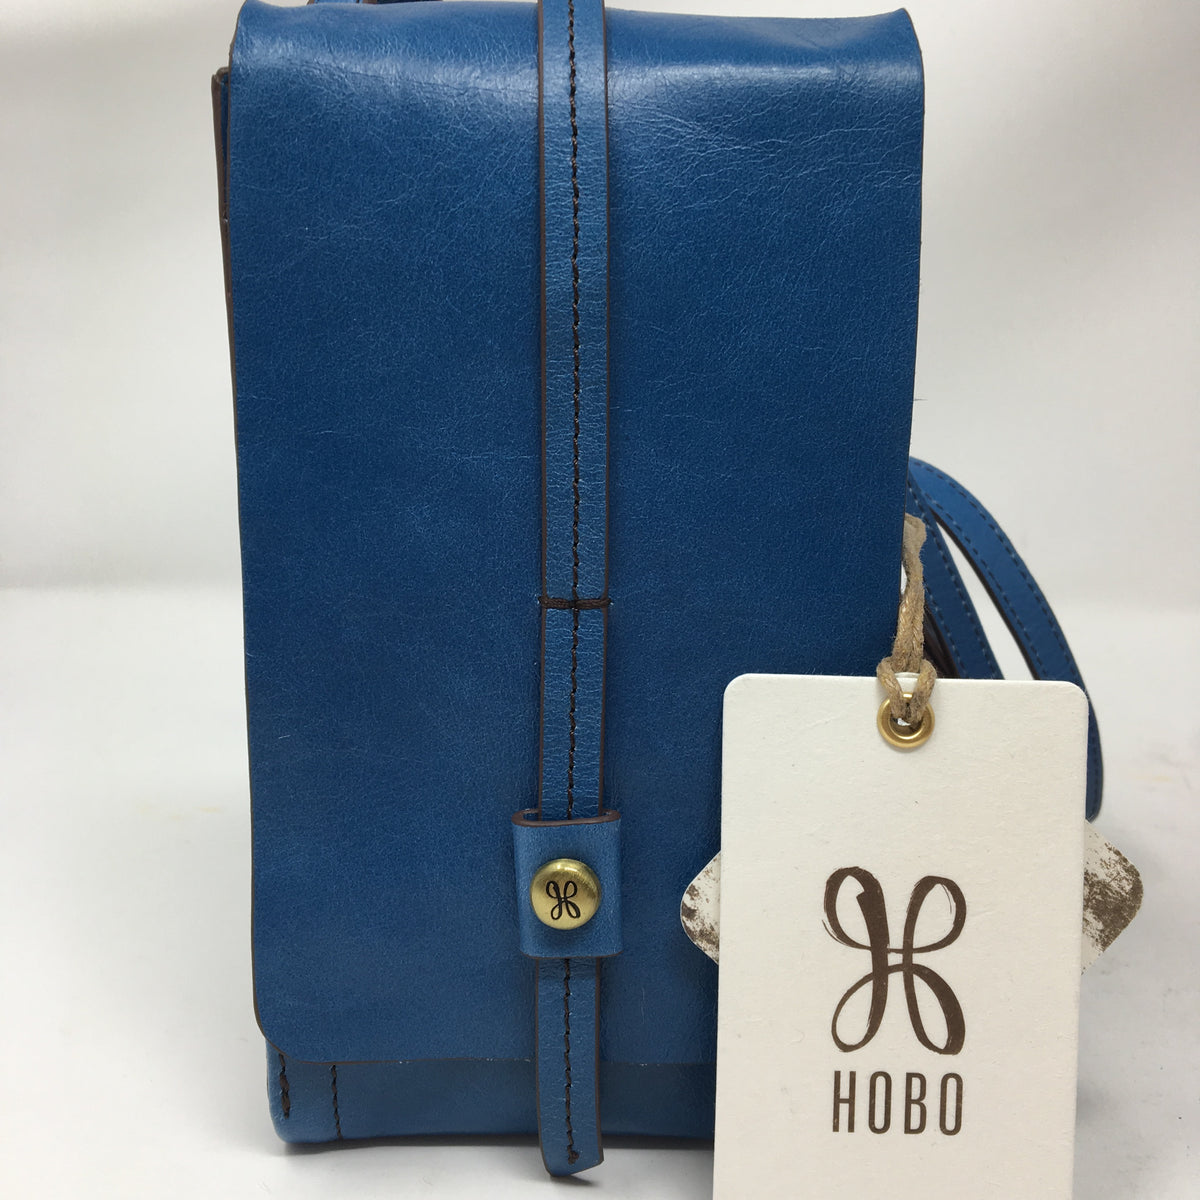 Hobo Token Bayou Bag